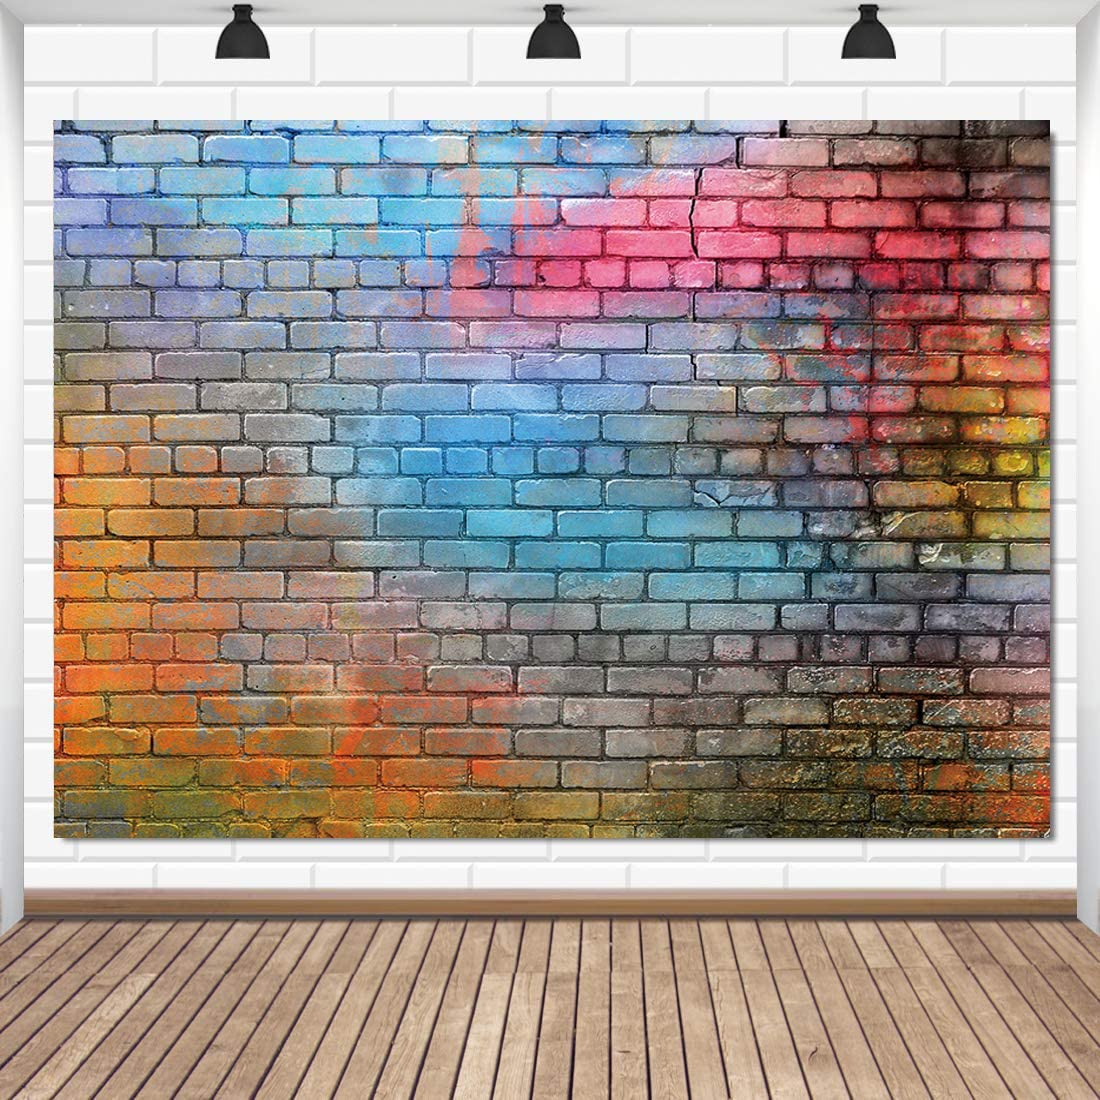 LTLYH 6x4ft Colorful Brick Wall Photo Backdrop Baby Birthday Wedding Party Photography Background Decor Studio Photo Booth A081